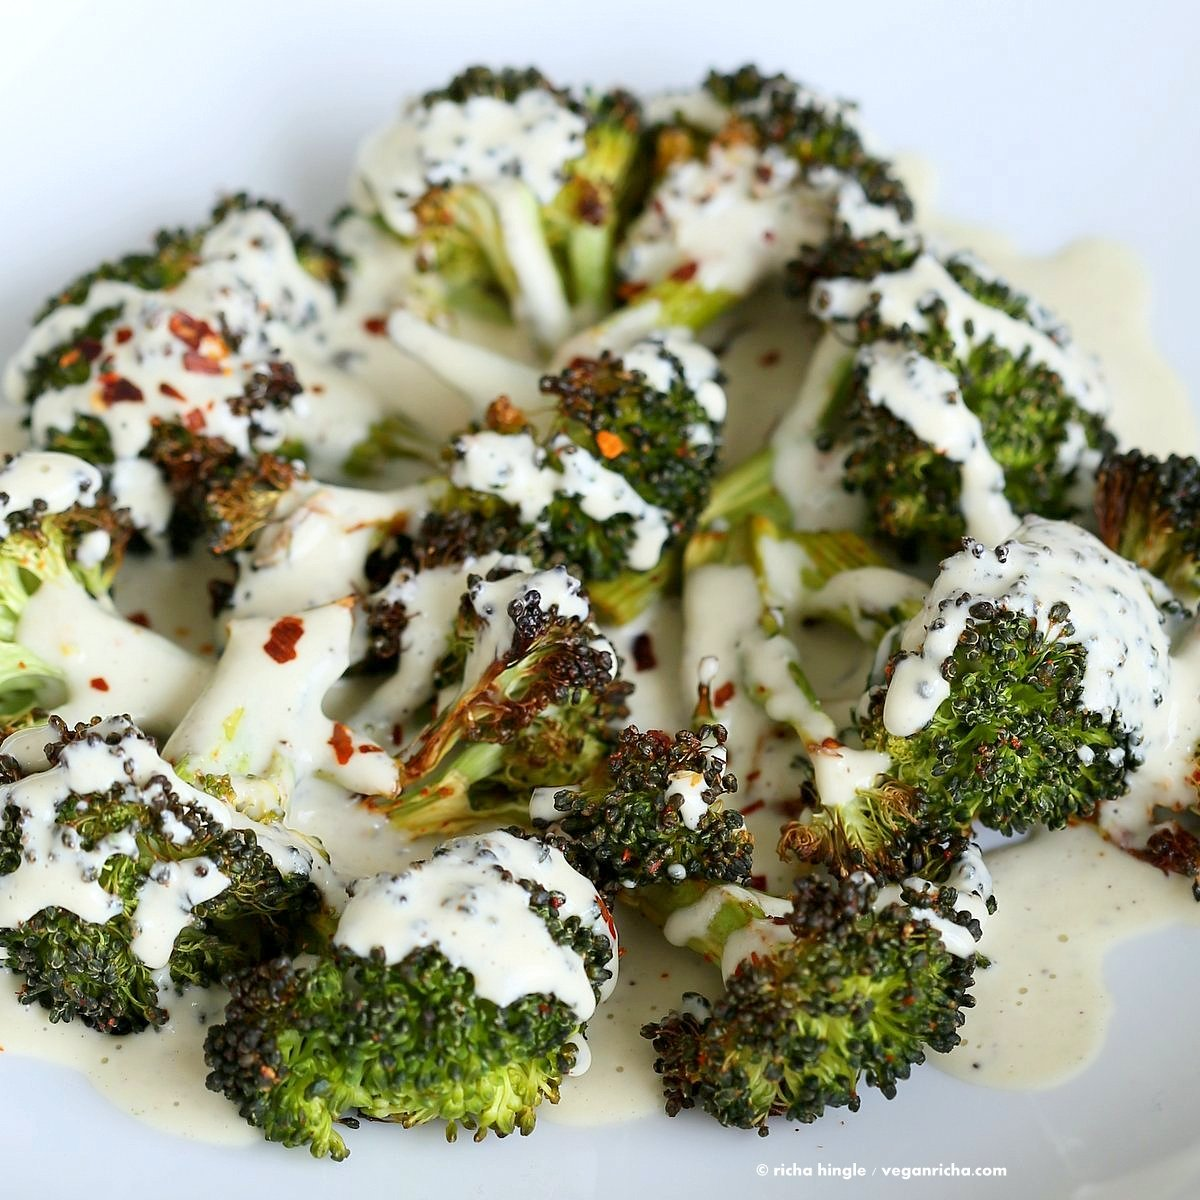 Roasted Broccoli with Creamy Basil Dressing. Broccoli tossed in garlic, cayenne, and baked. Served with cheesy cashew basil sauce. Vegan Glutenfree soyfree Recipe | VeganRicha.com